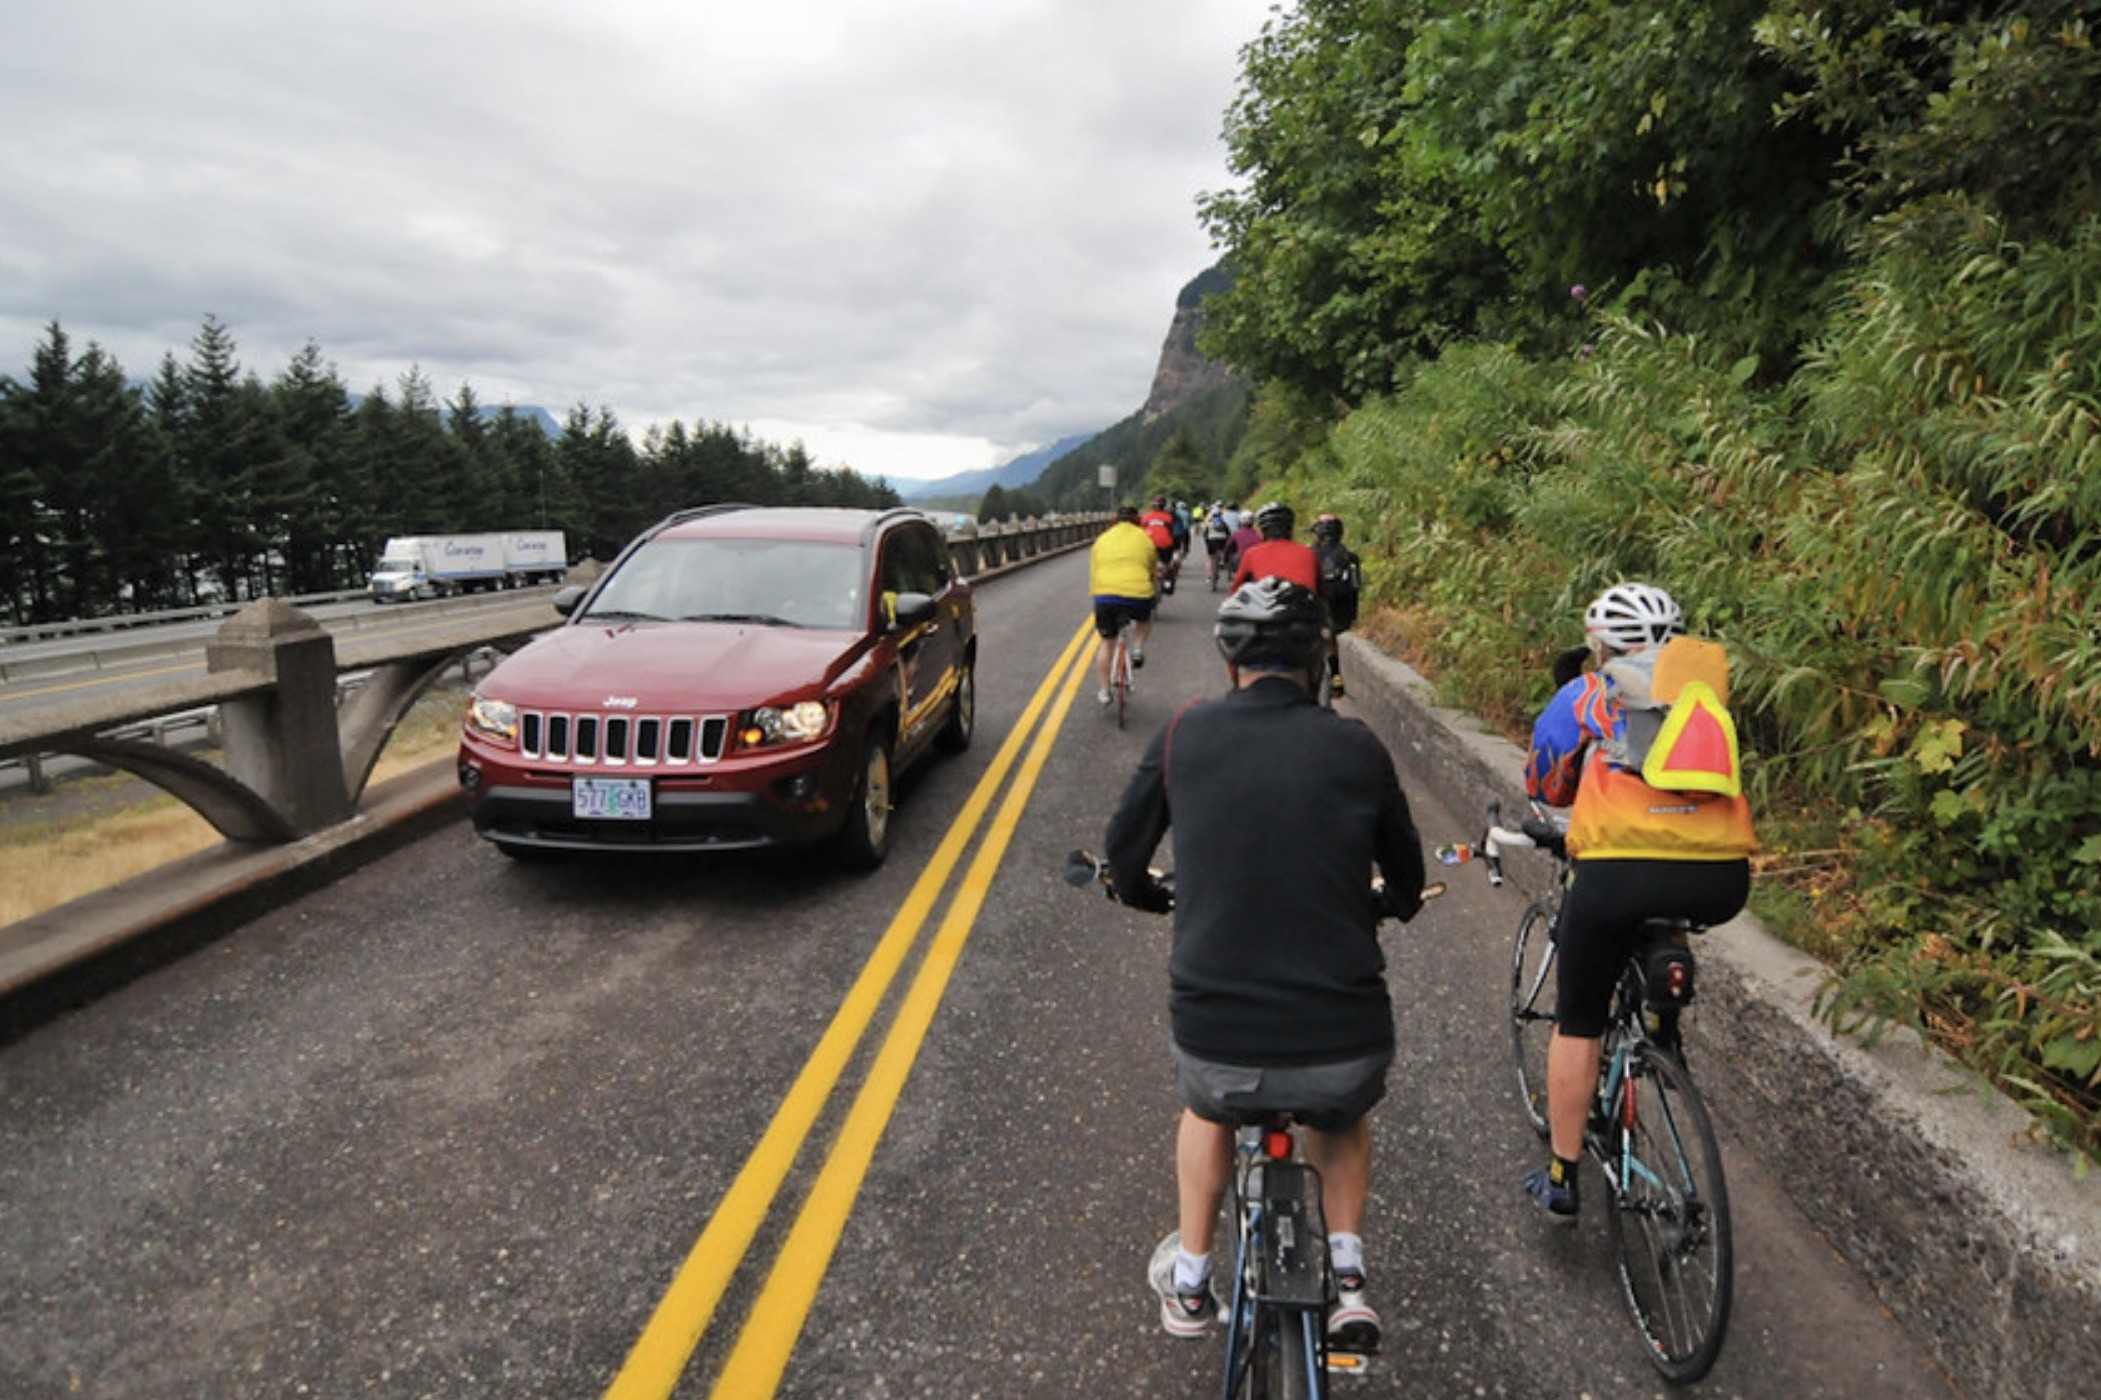 Bike Portland: Time to Look Past Cars, Says Gorge Leader